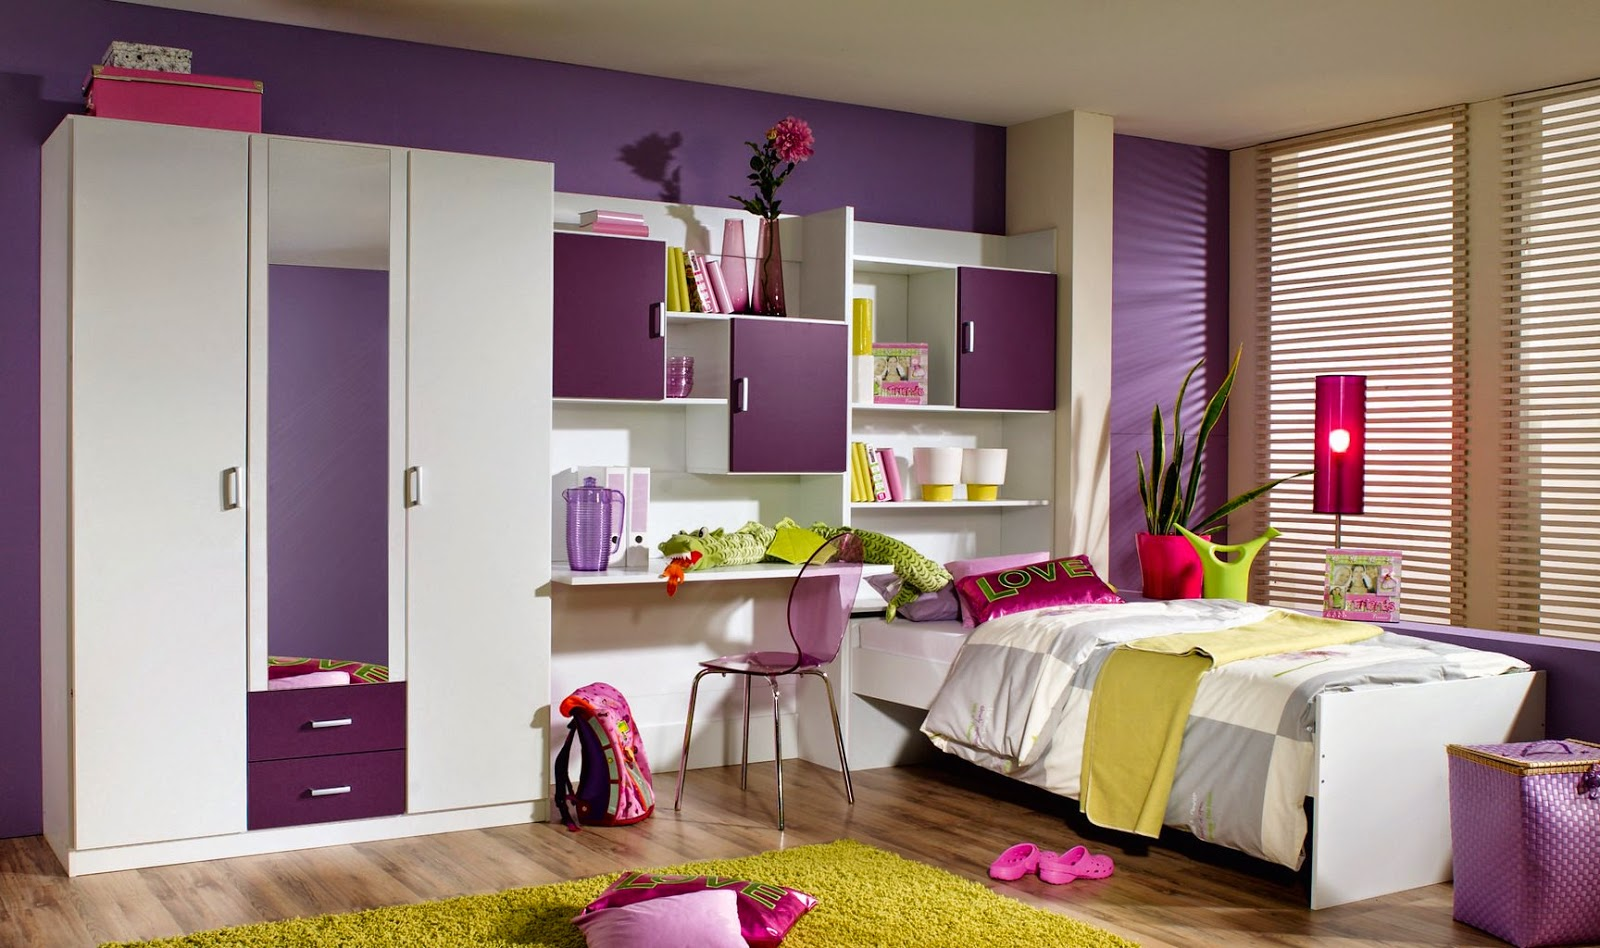 Chambre ado fille for Idee de decoration de maison